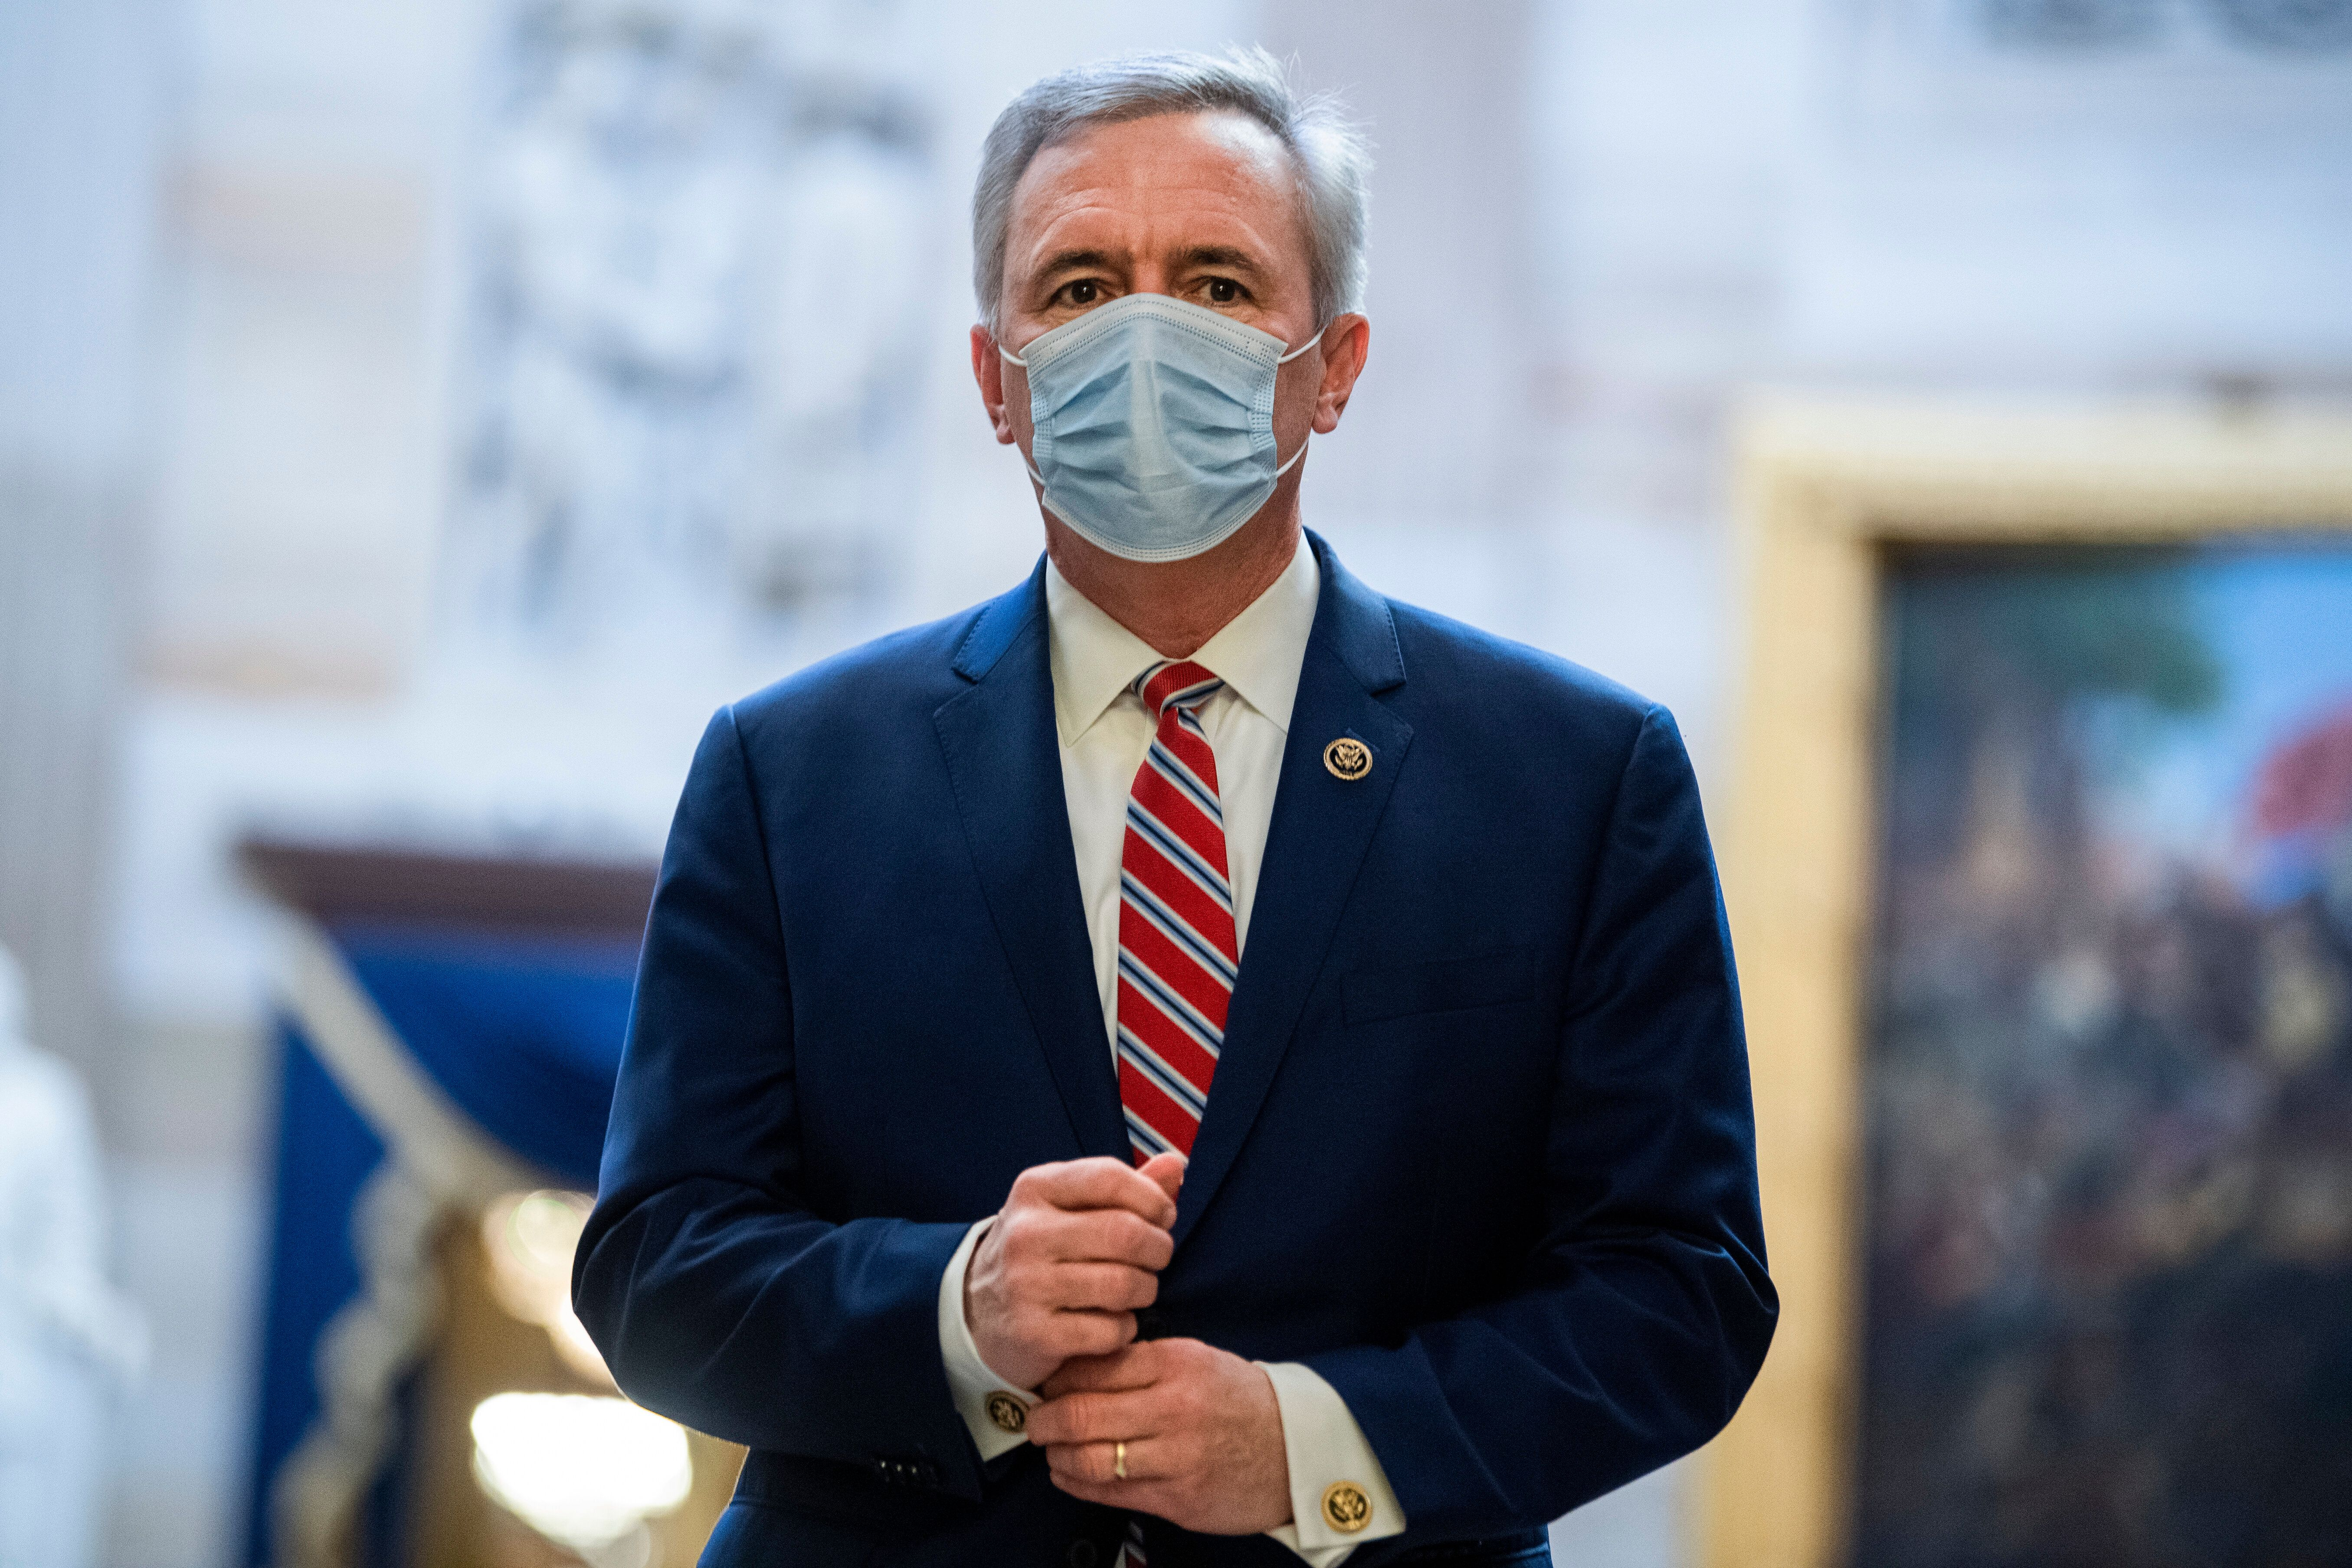 Rep. John Katko before the House voted to impeach President Donald Trump for inciting an insurrection.